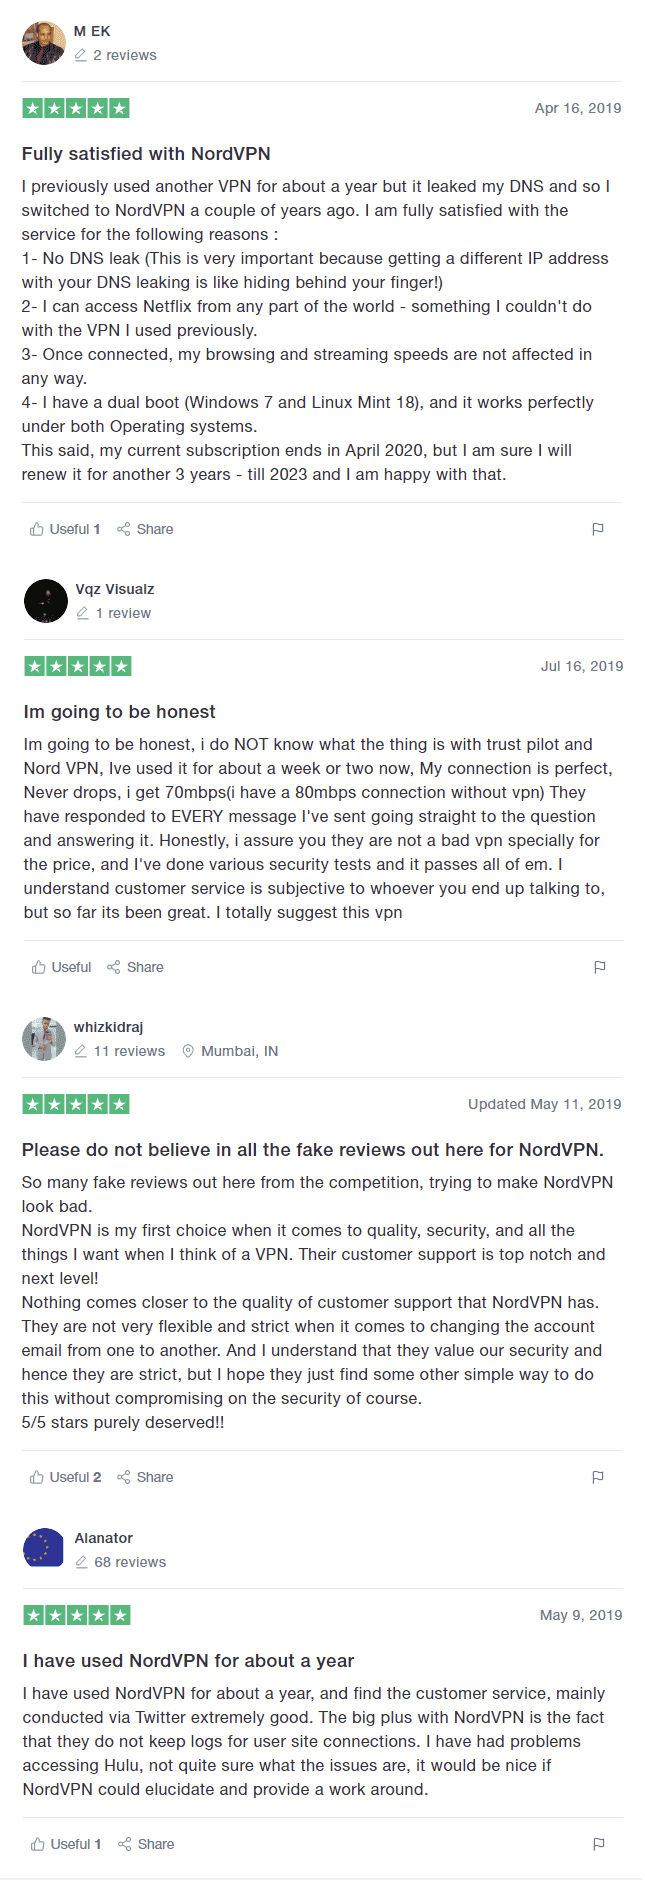 Real NordVPN Reviews from TrustPilot